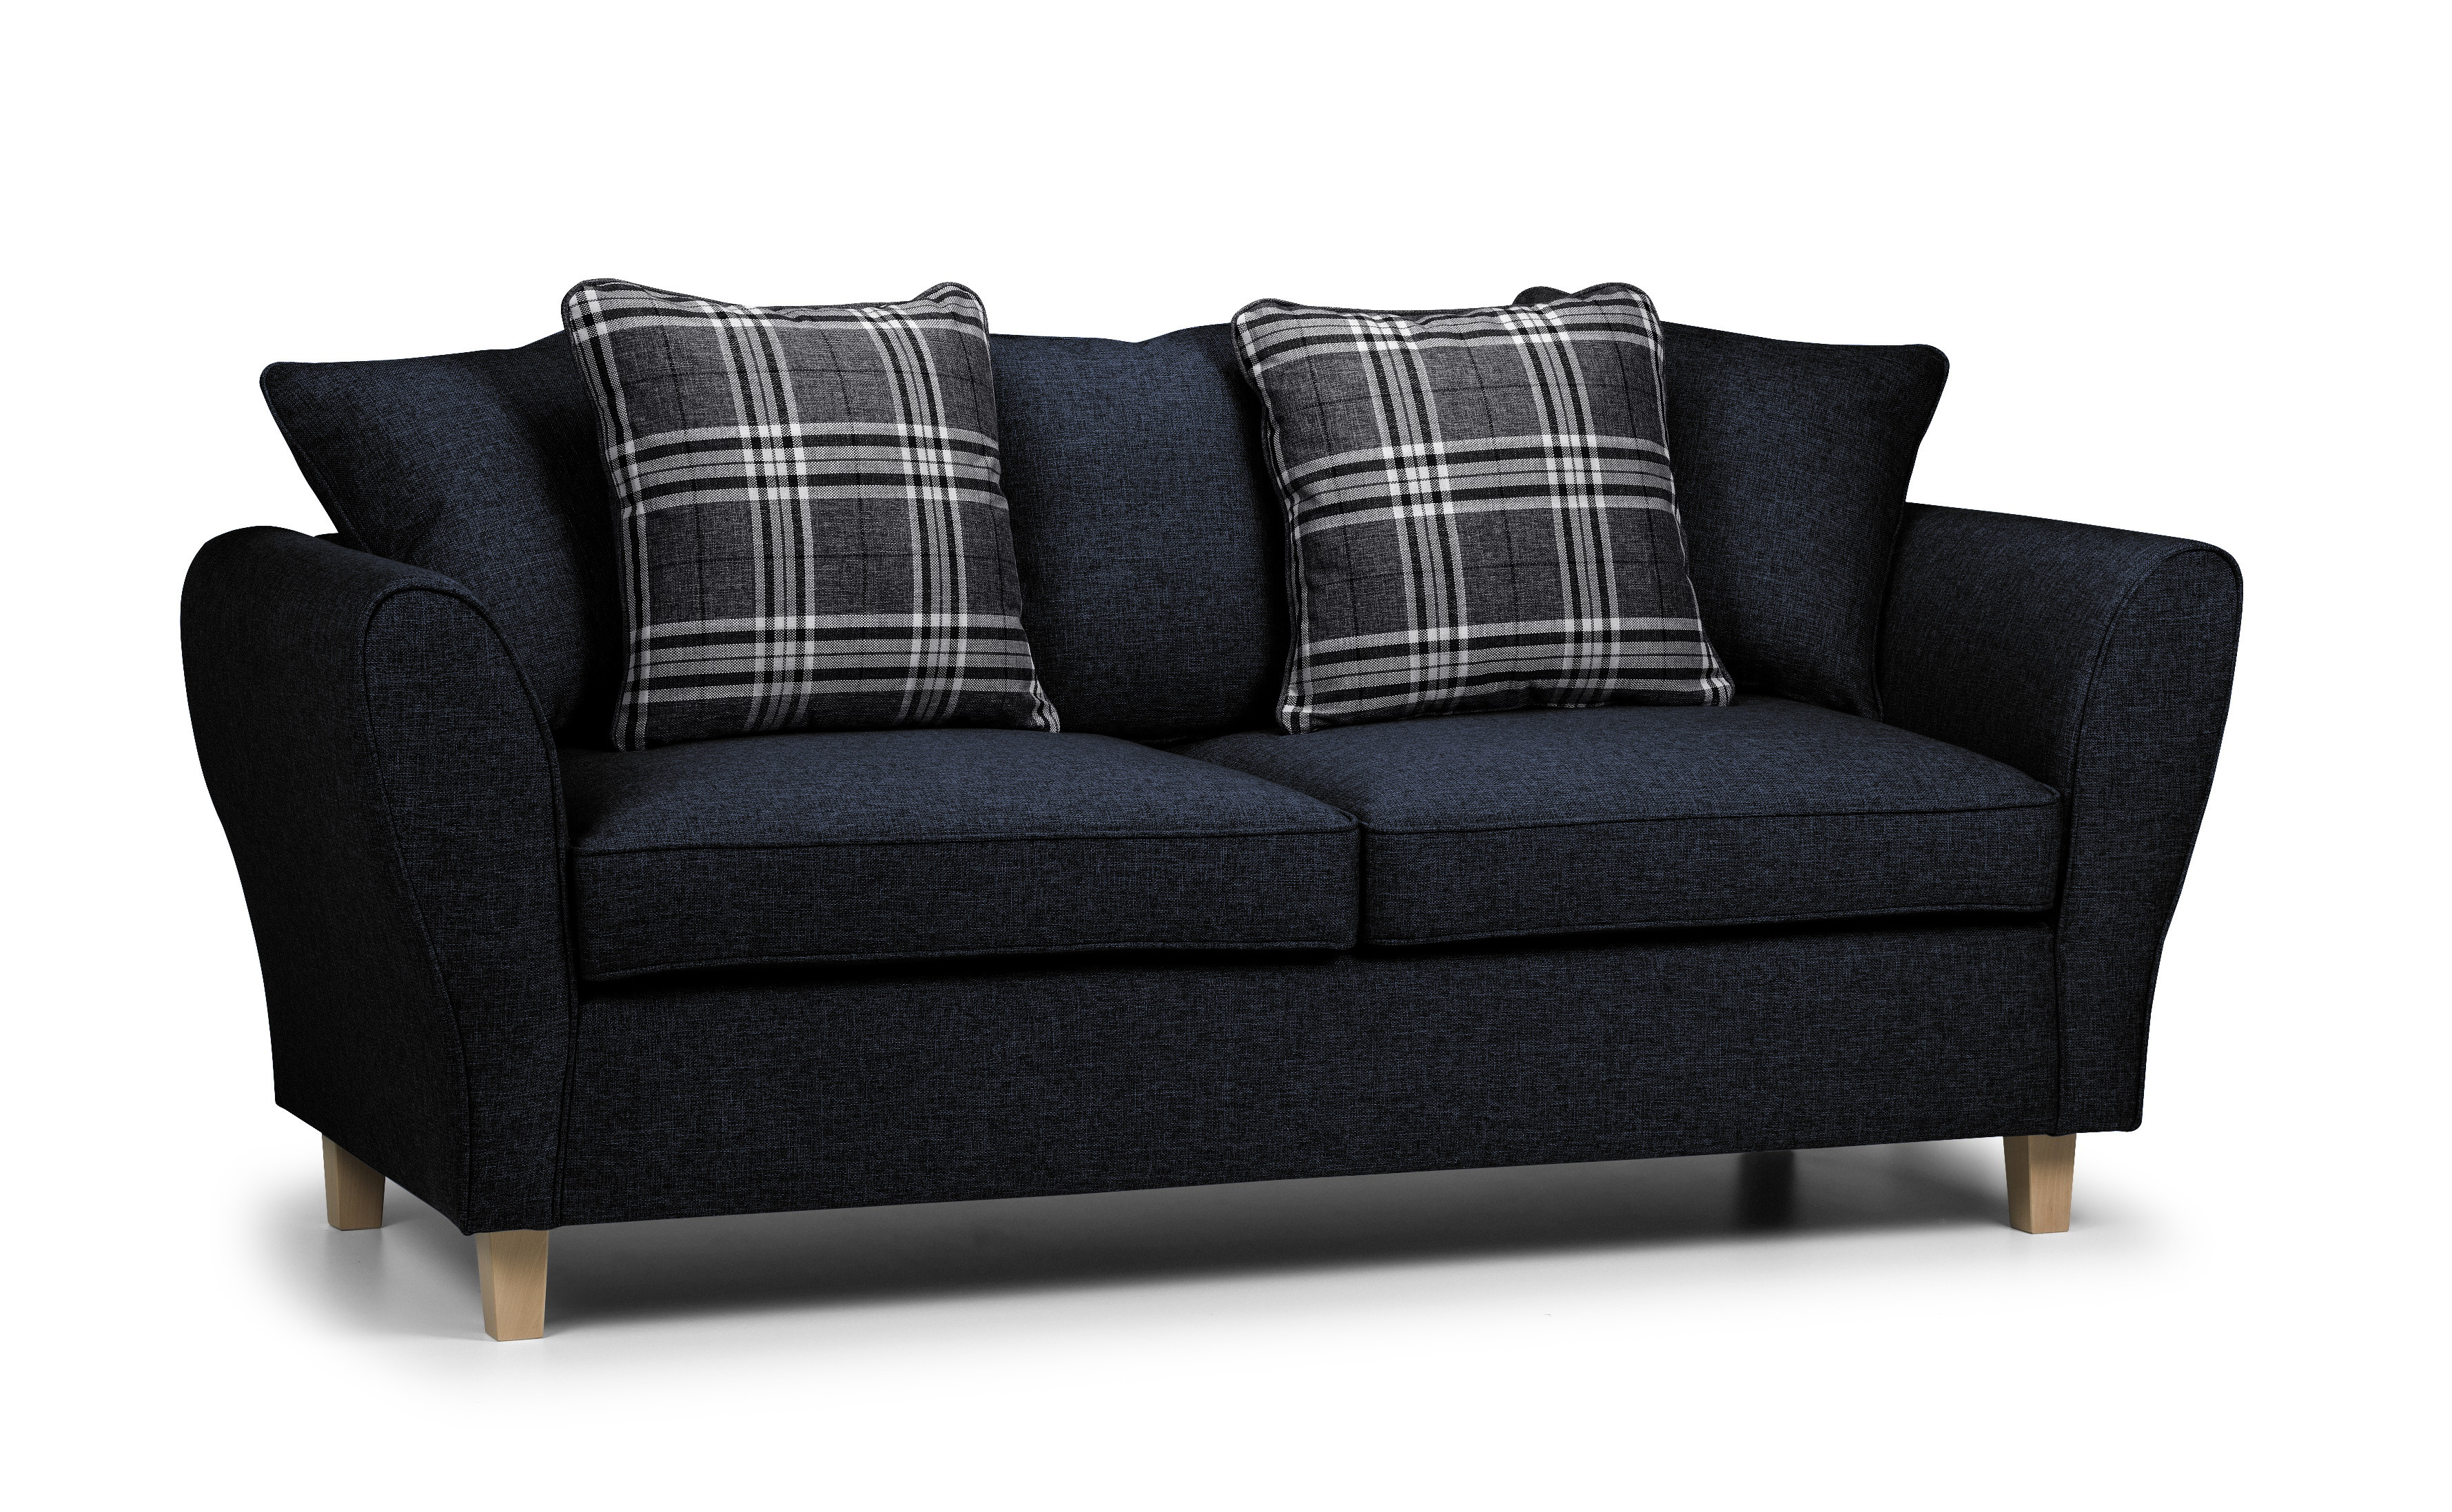 Ashbourne 2 seater charcoal new.jpg